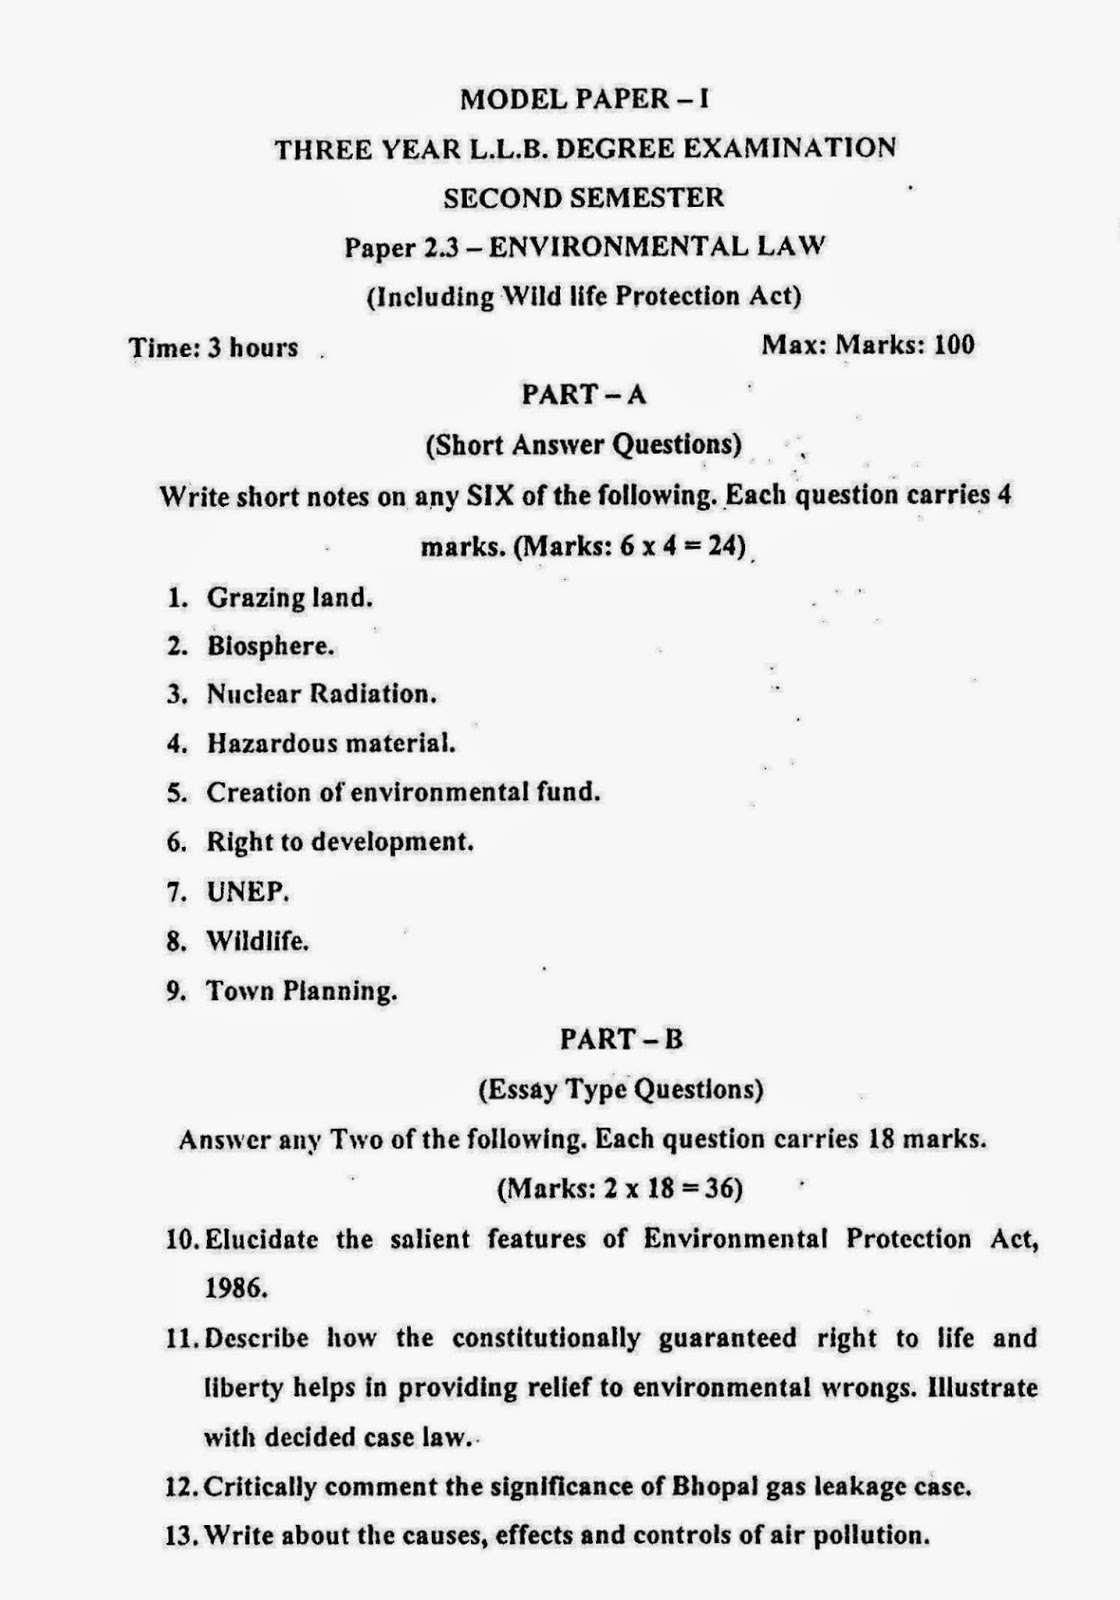 key environmental legislation essay As part of the role in delivering learning to others it is important i ensure all pertinent aspects of legislation, regulatory requirements and codes of such areas particularly relevant to the role of teaching is to ensure the environment is safe and an essay key aspects 11.